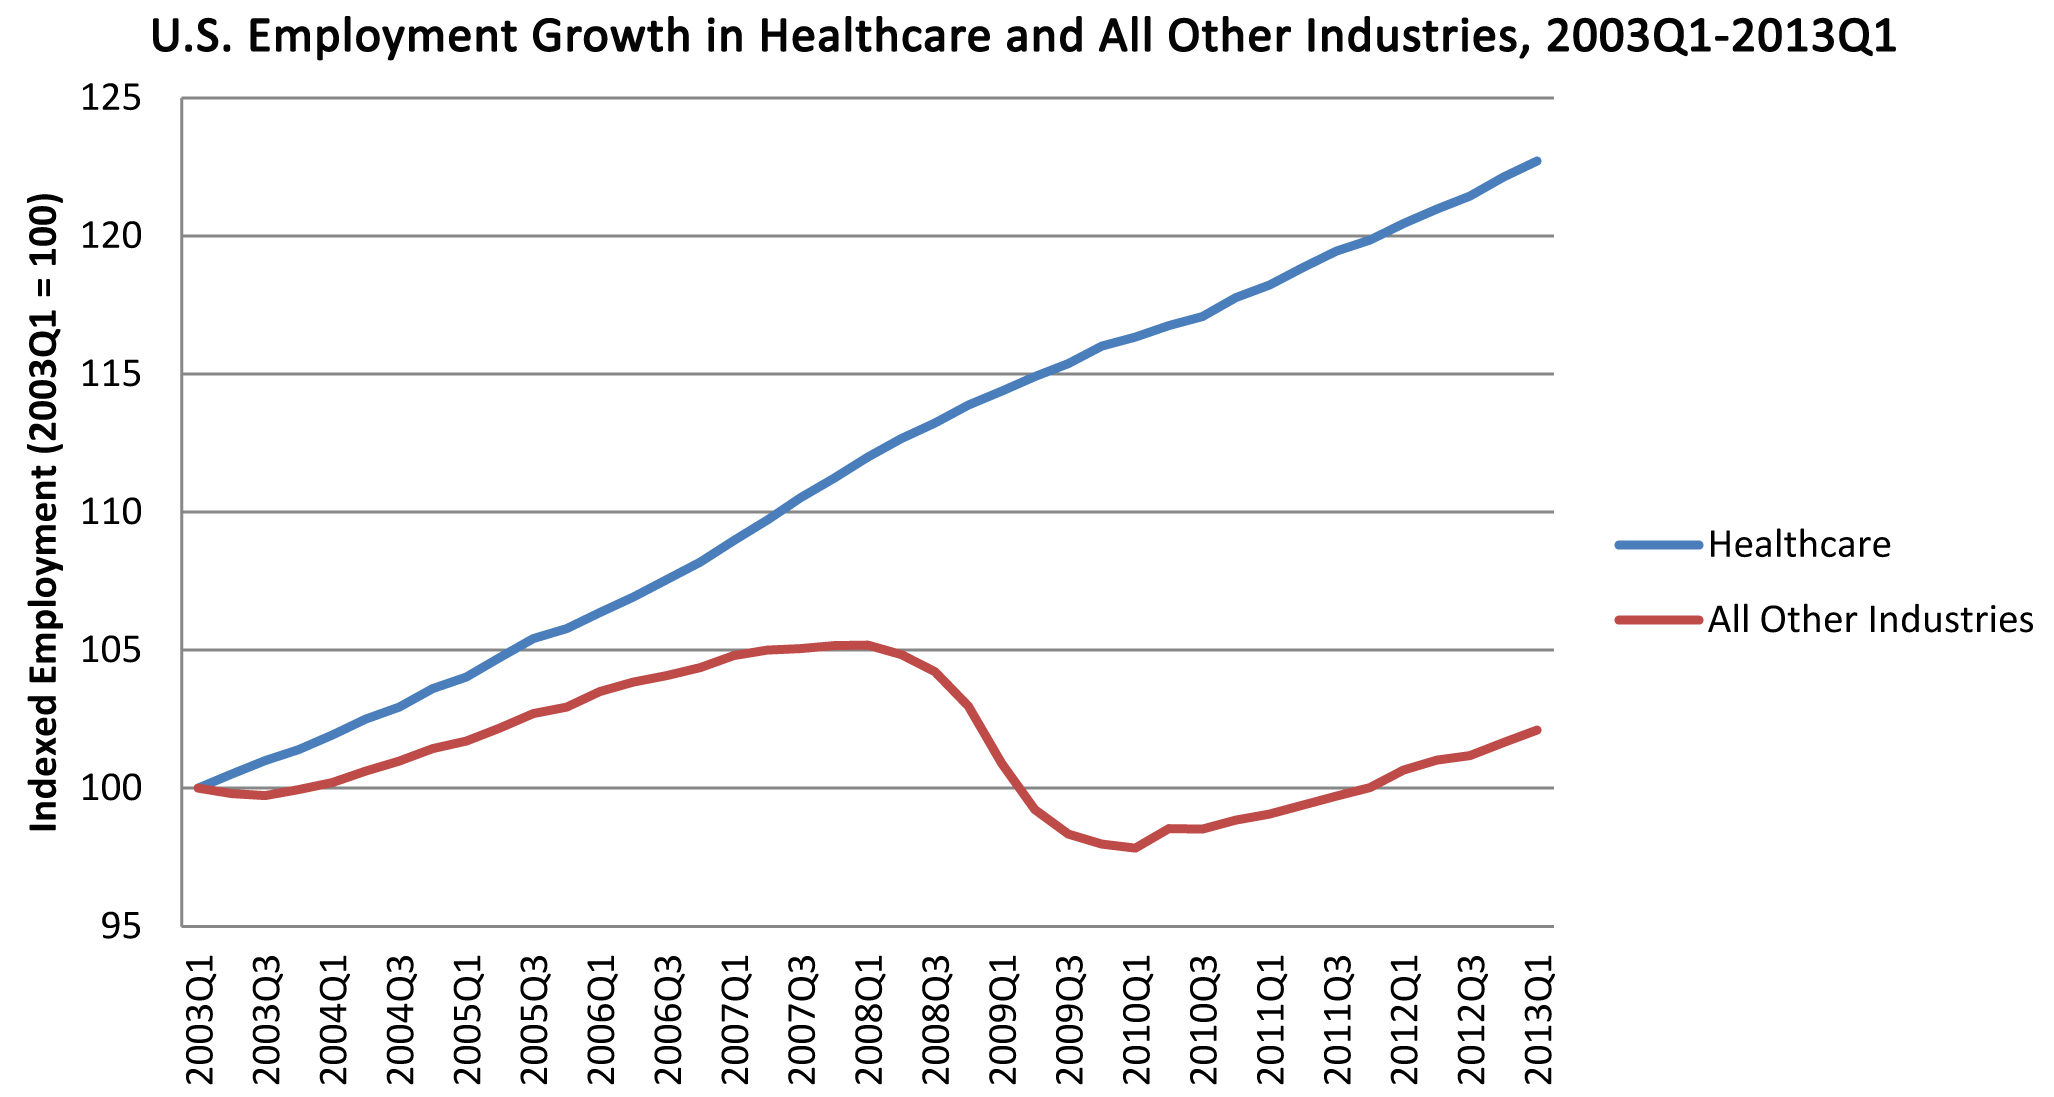 Employment Growth in Healthcare Industries